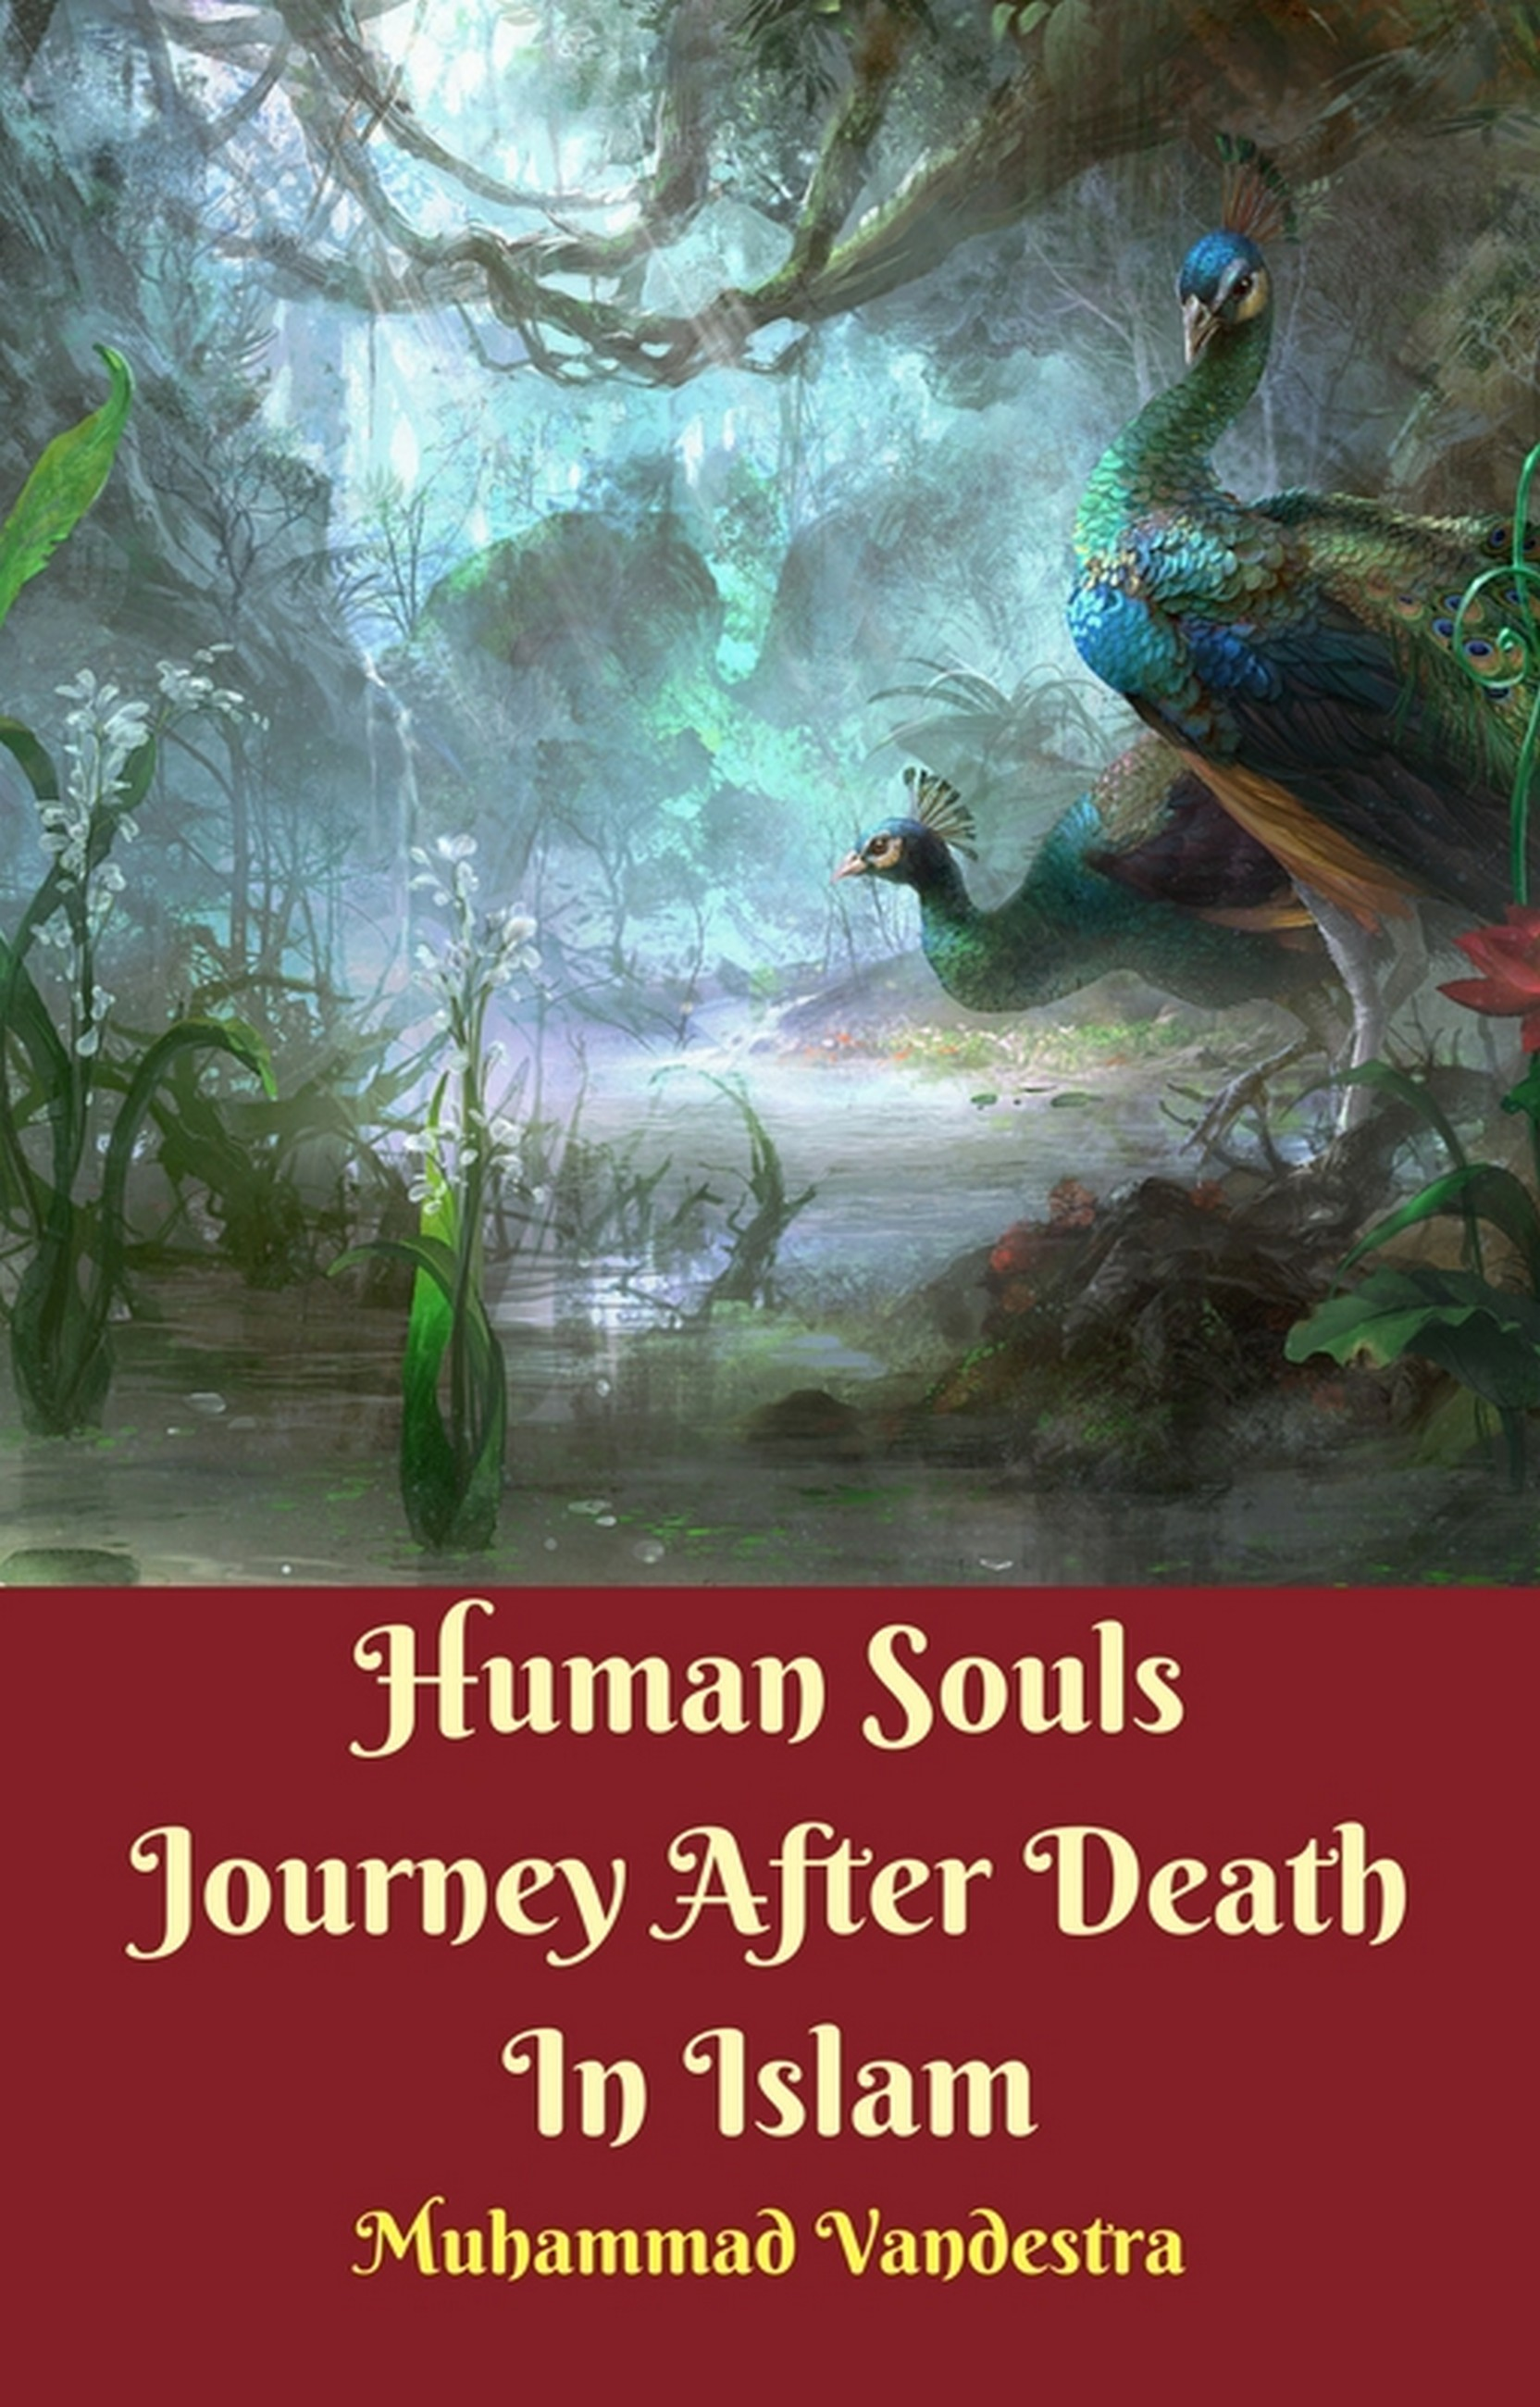 Human Souls Journey After Death In Islam By Muhammad Vandestra